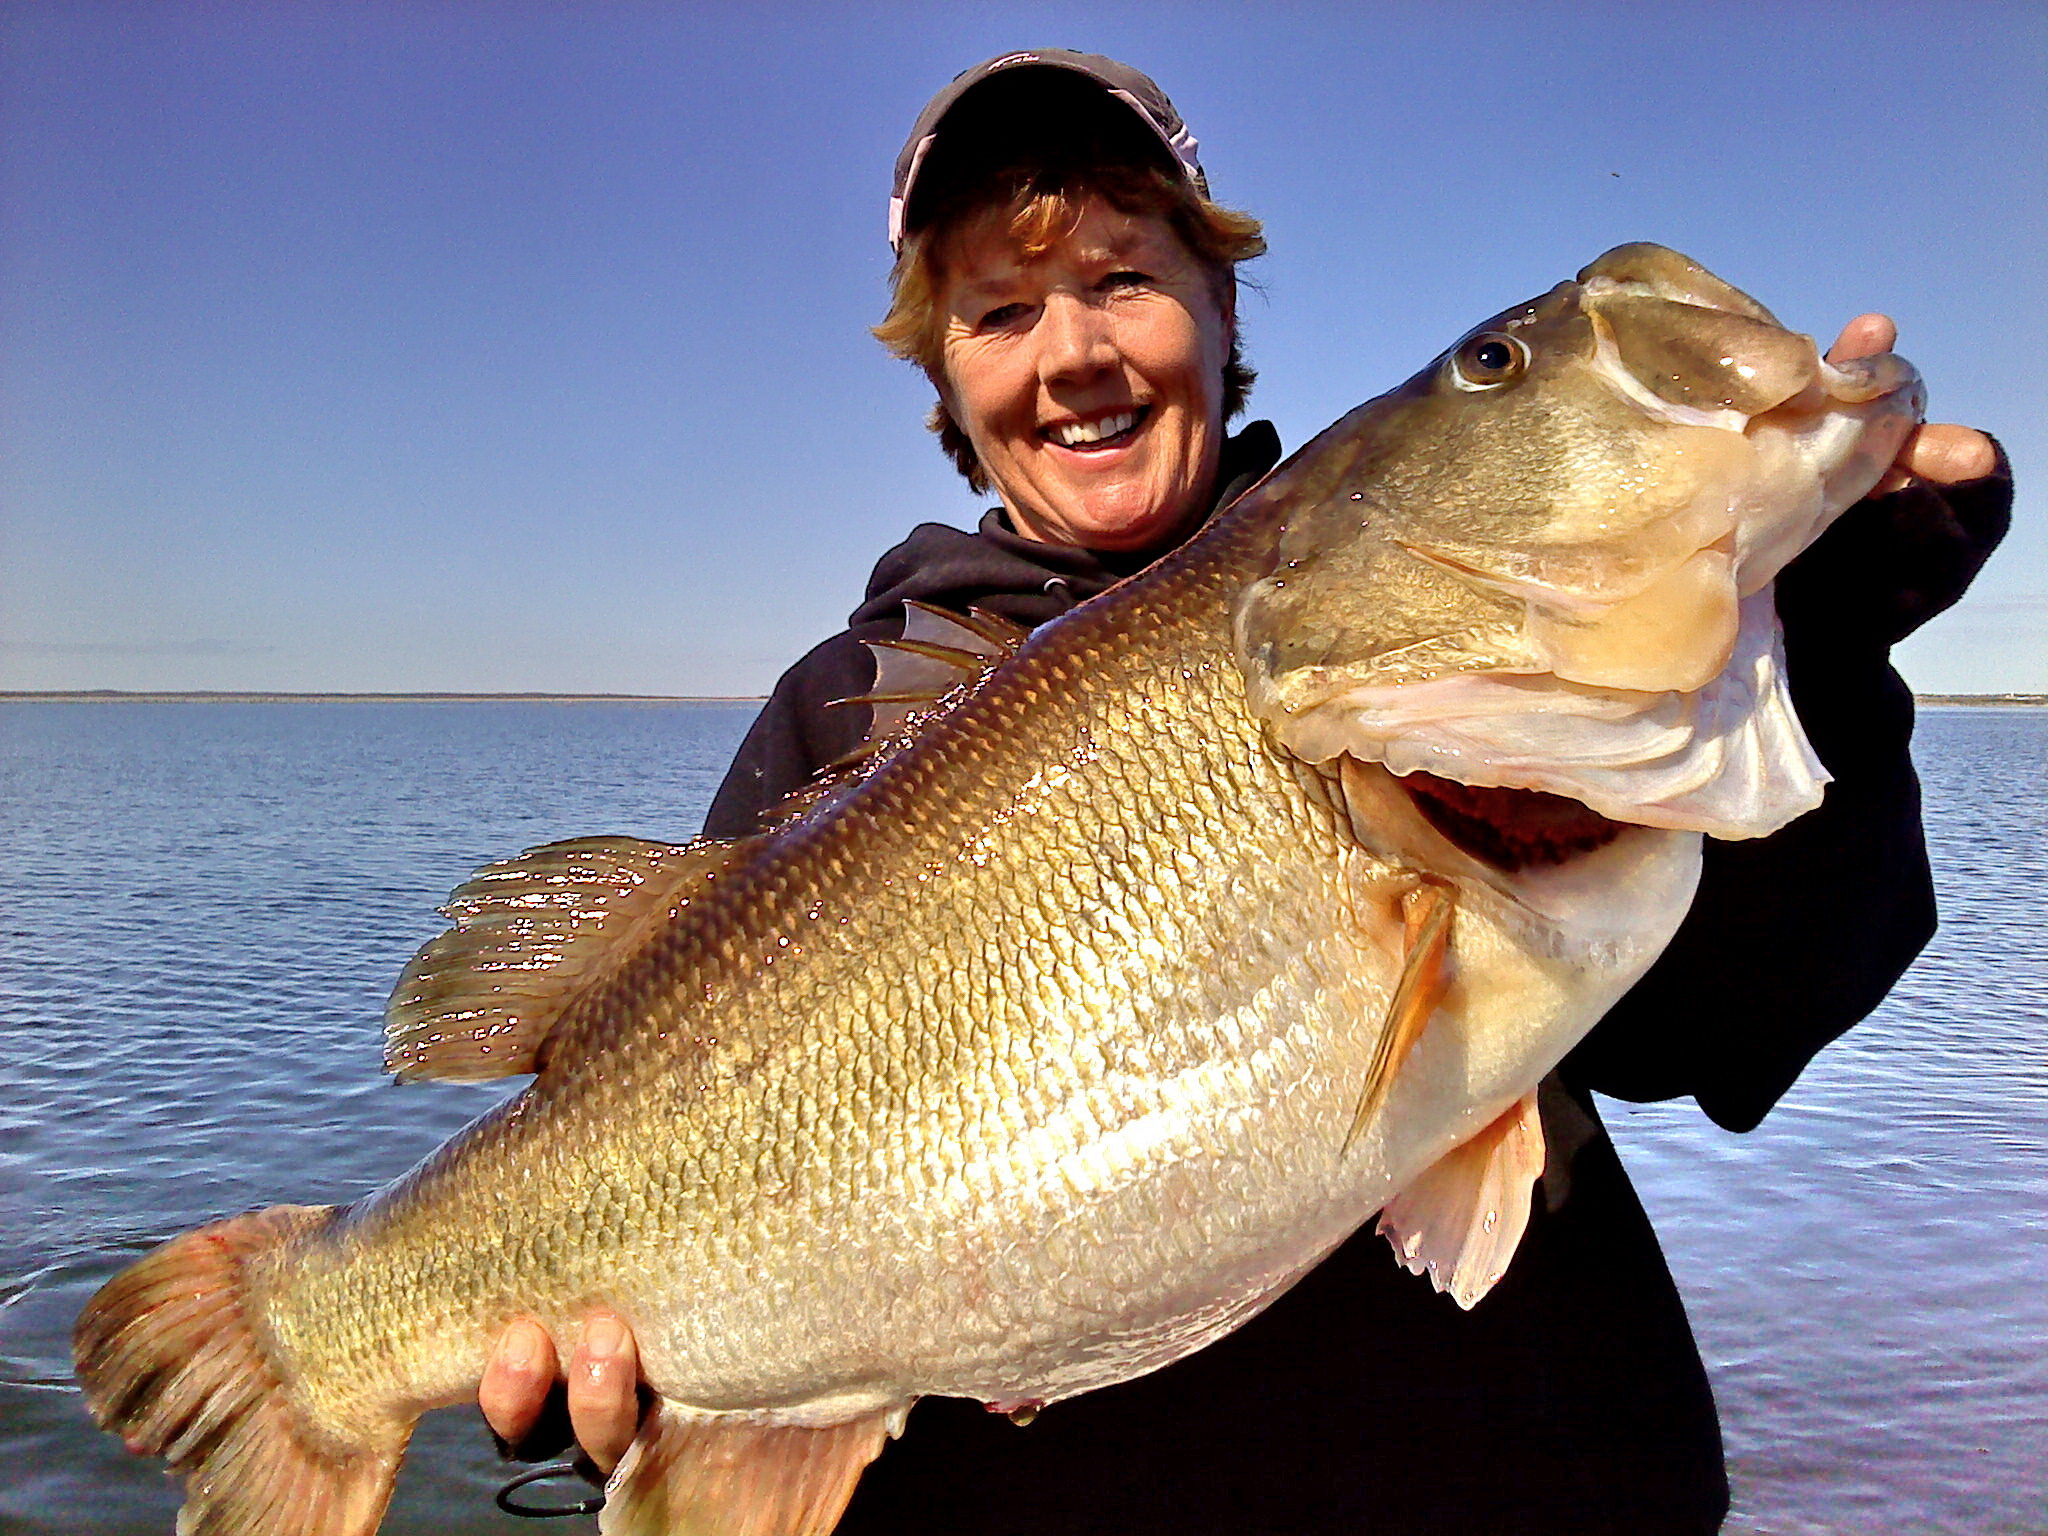 Photos of the biggest largemouth bass in texas houston for Best bass fishing lakes in texas